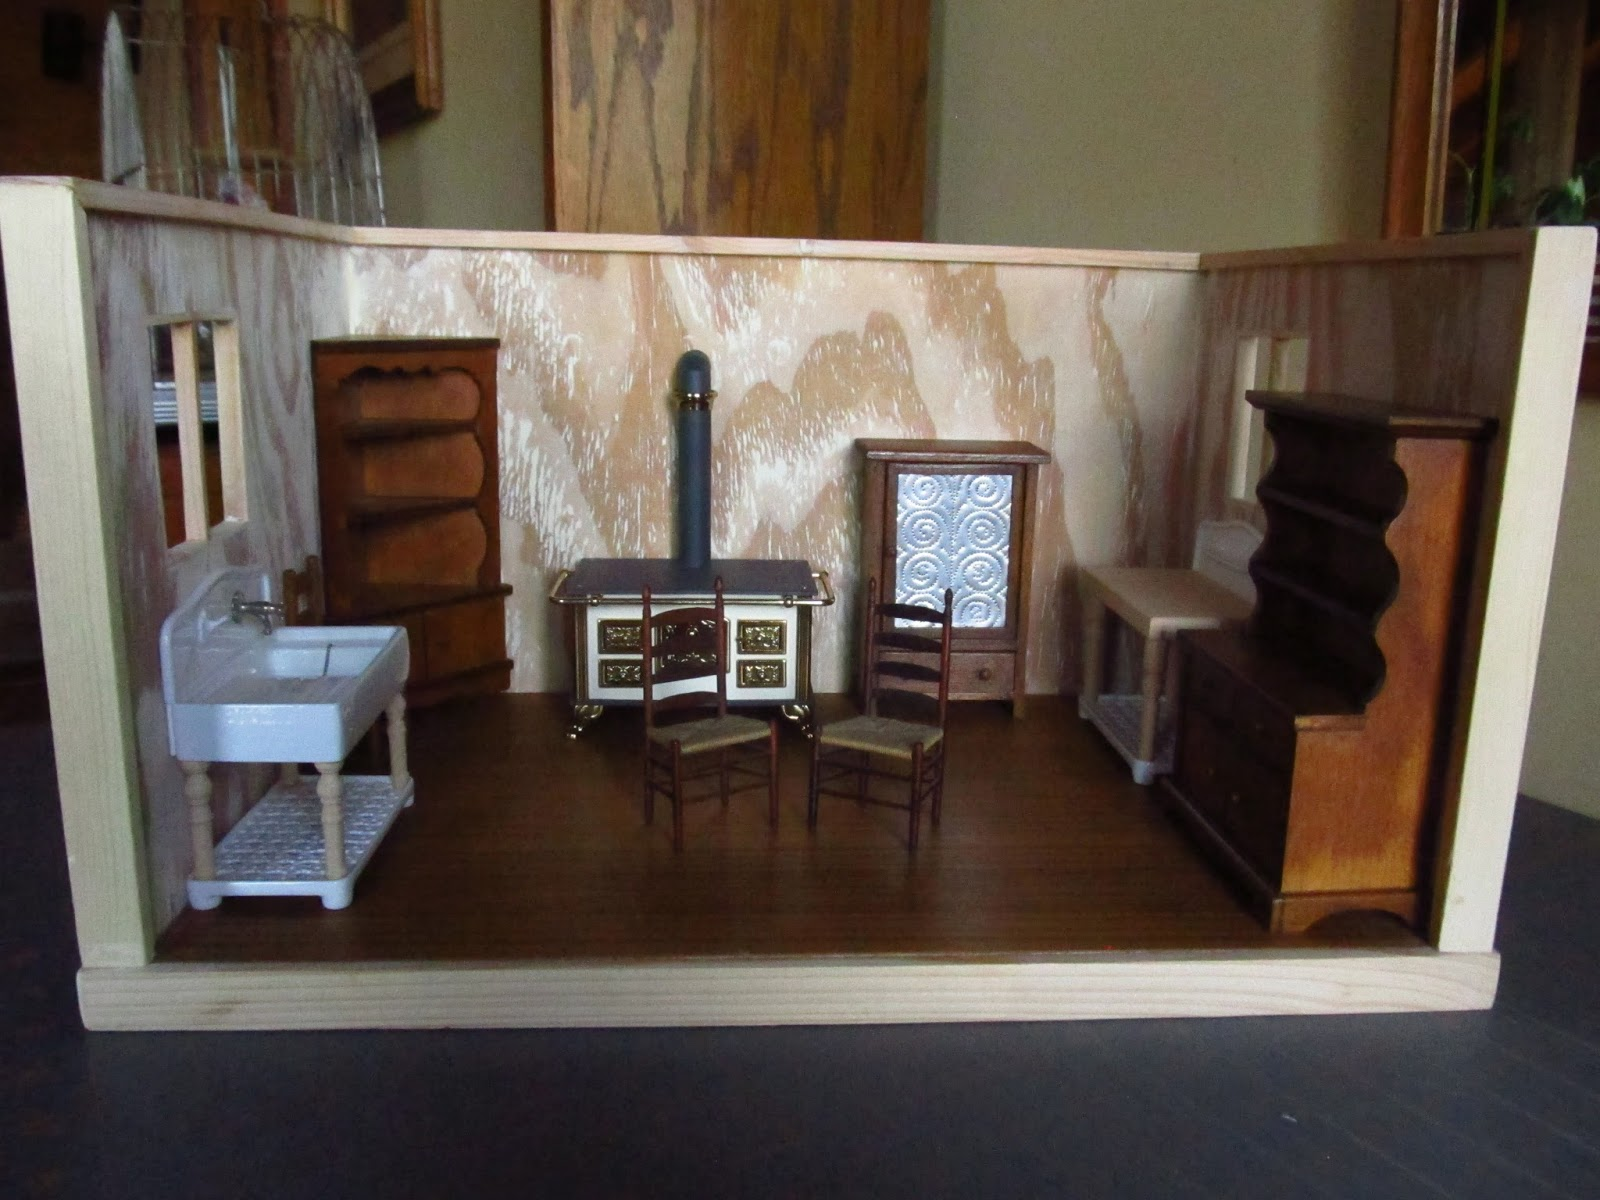 Kitchen Dollhouse Furniture Make Do Dolls Halls Lifetime Toys Dollhouse Furniture Kitchen